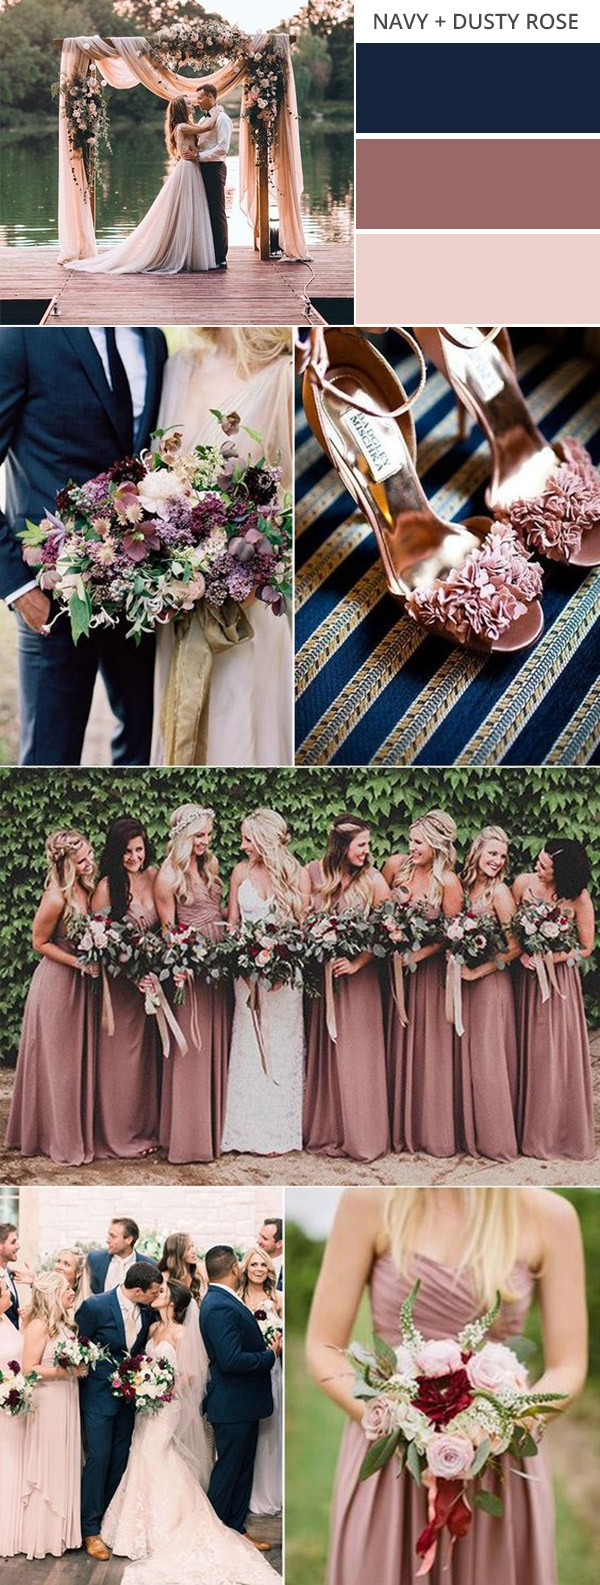 Top 10 gorgeous fall wedding color palettes to love emmalovesweddings navy blue and dusty rose wedding color ideas for fall junglespirit Choice Image